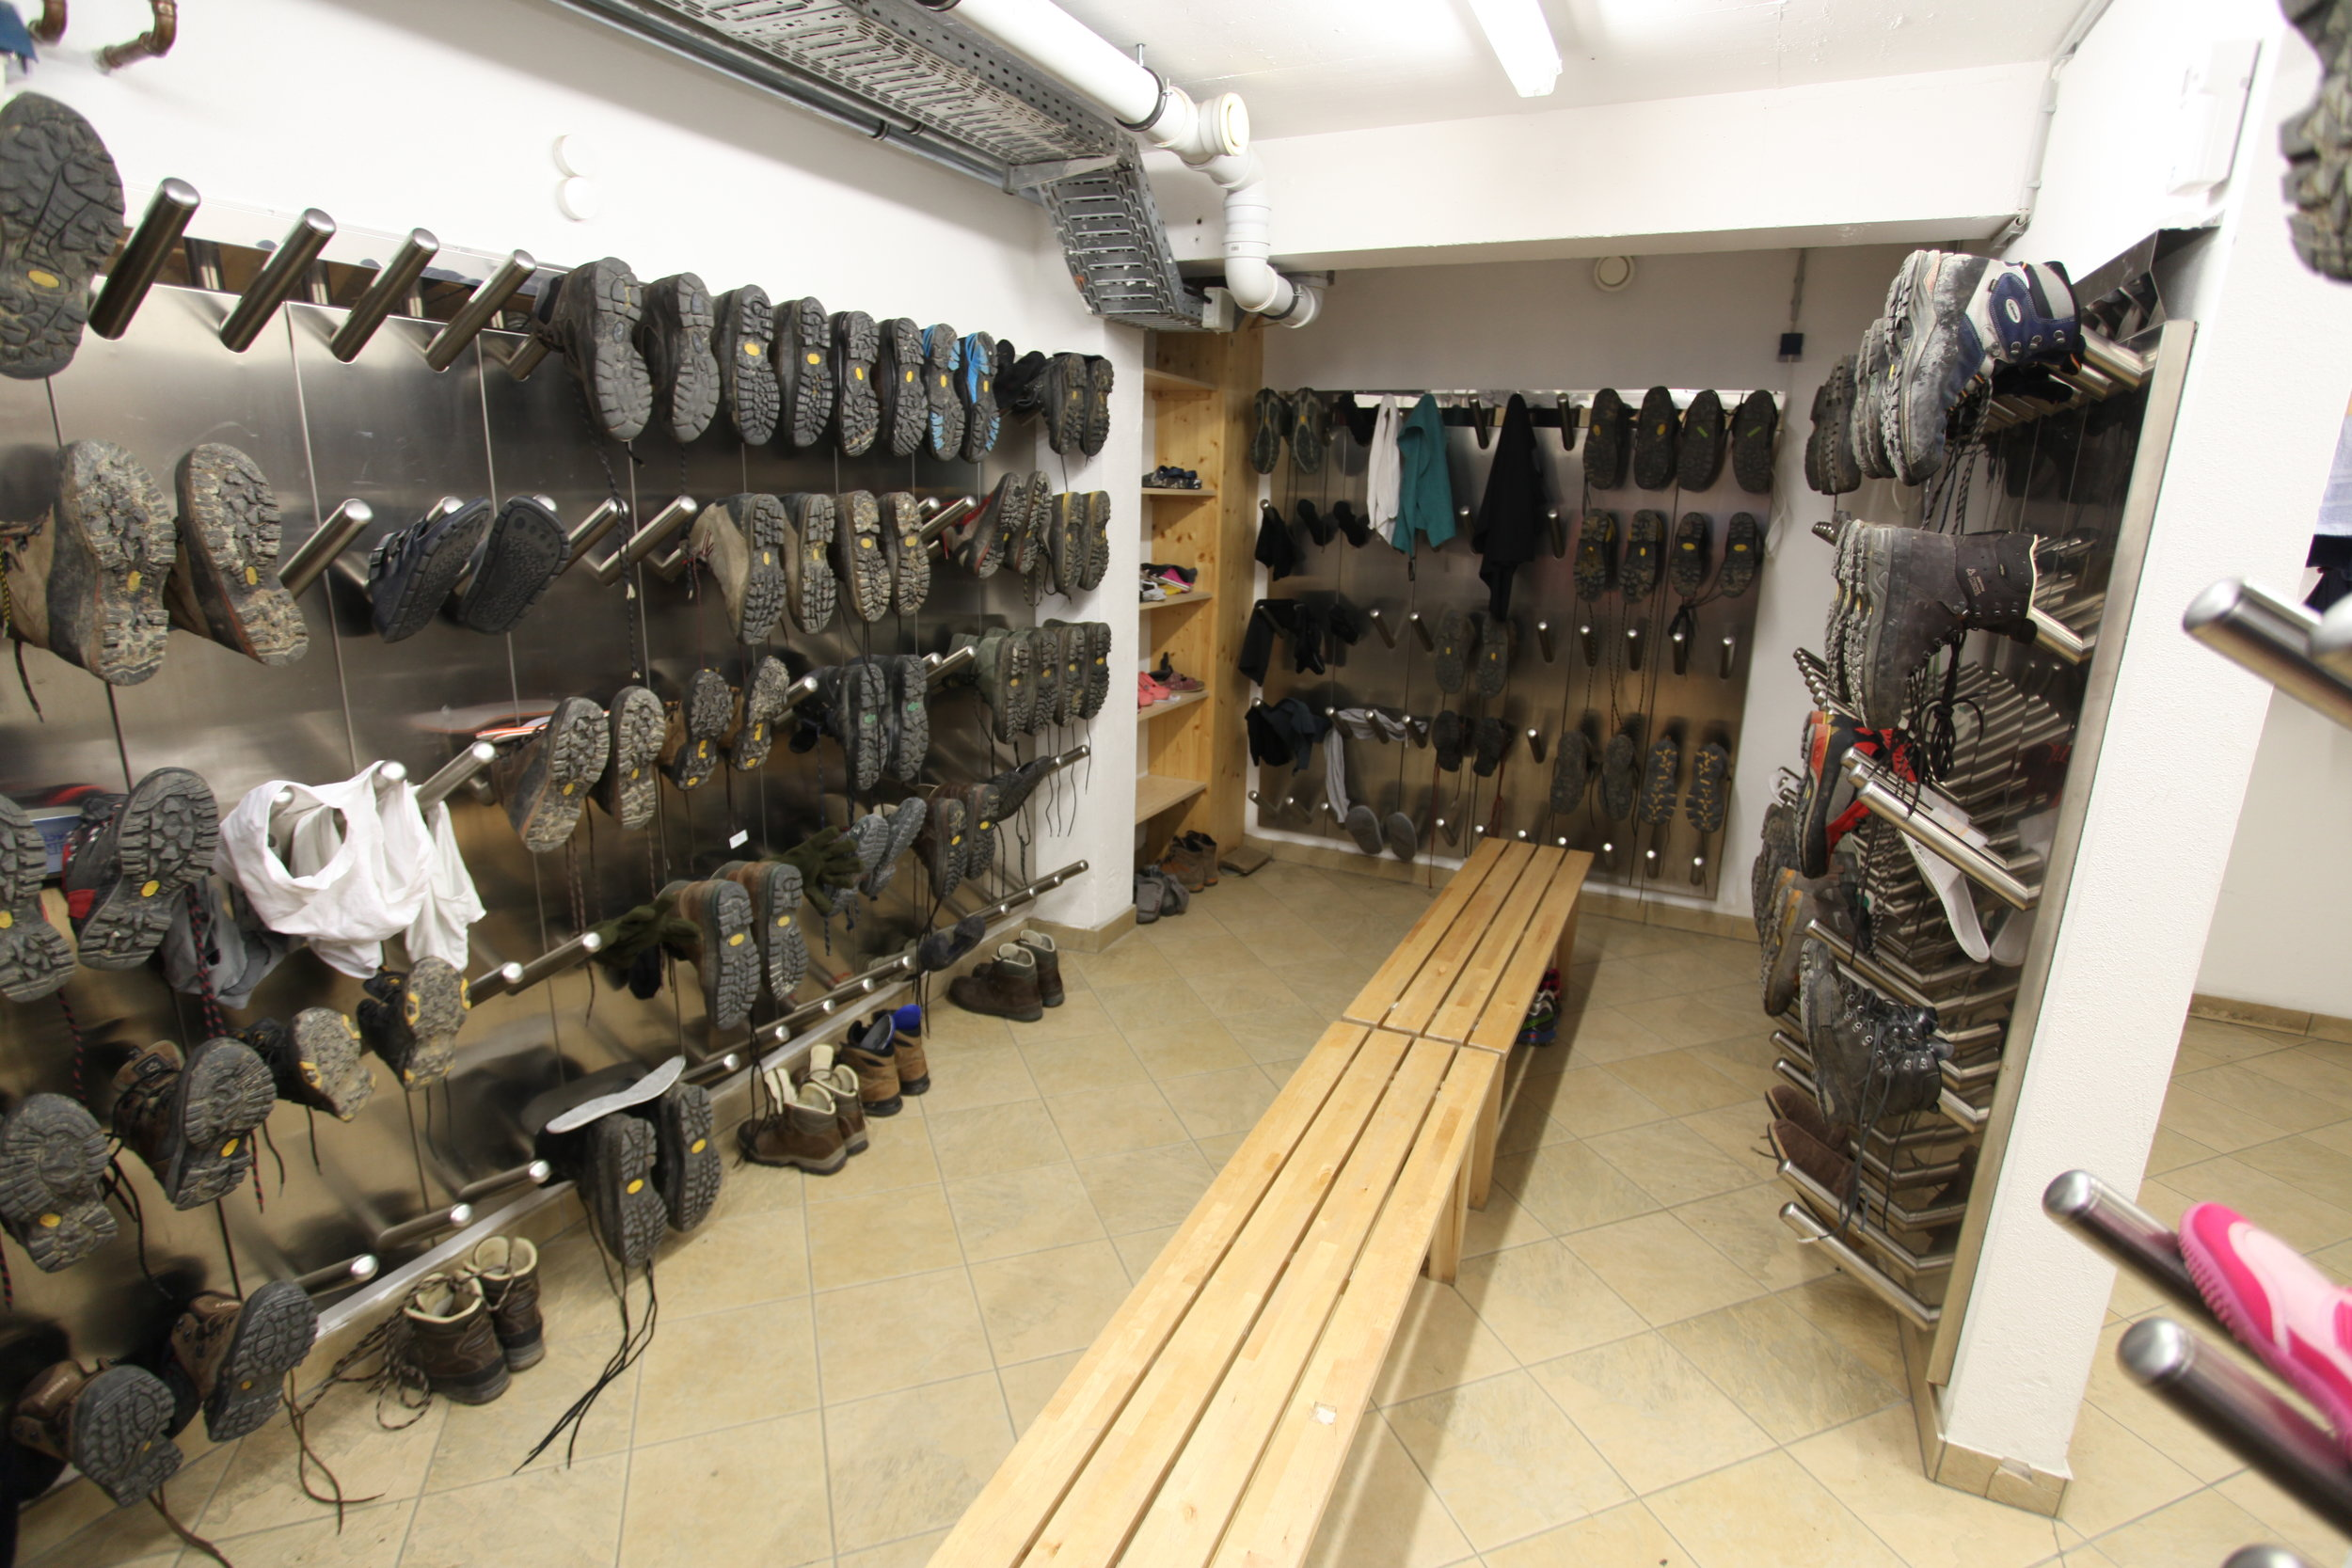 The boot drying room inside Dresdner Hut, I believe.